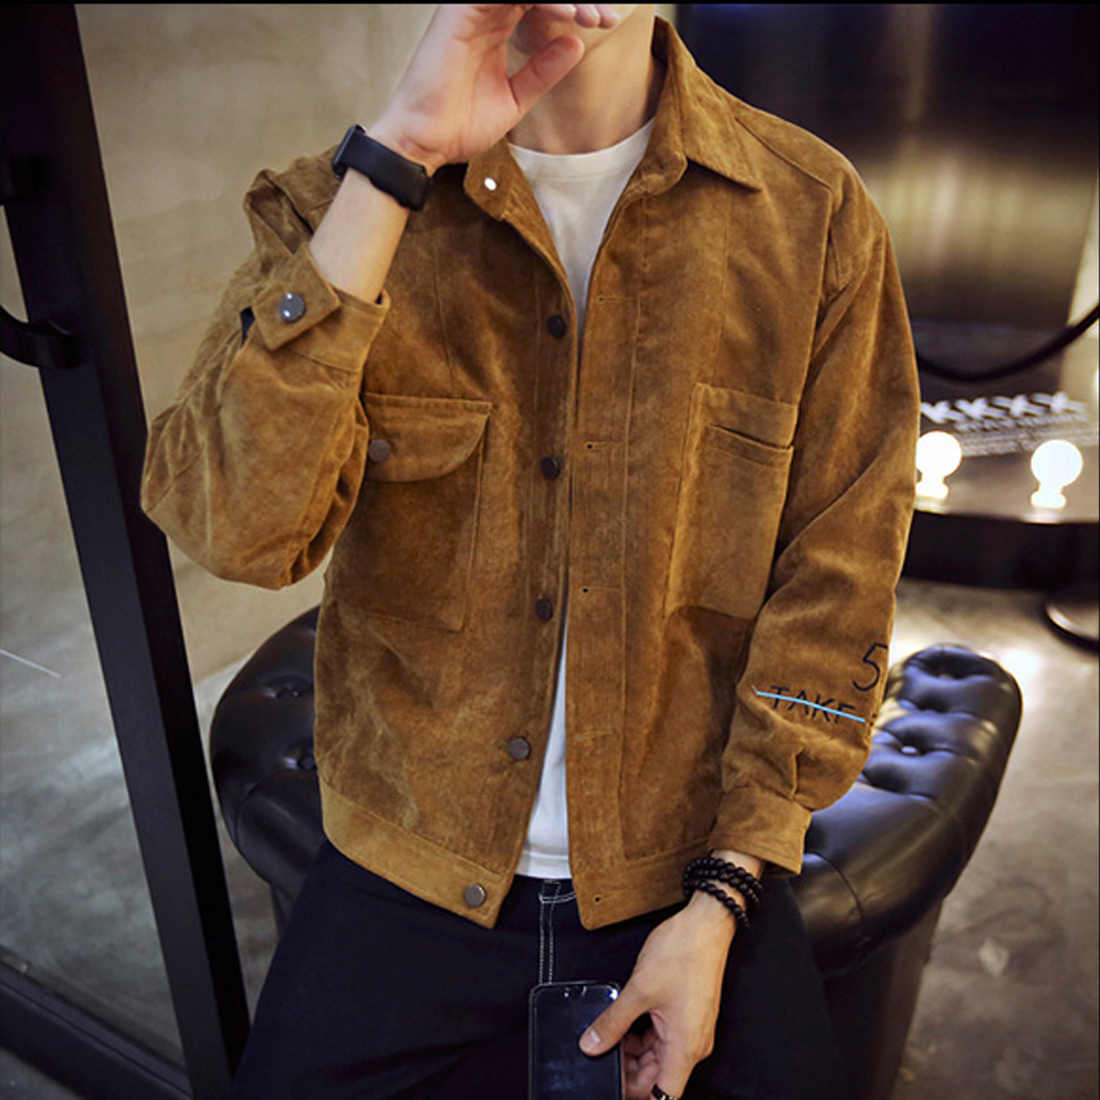 2019 Spring Autumn Hot Corduroy Jackets Men Long Sleeve Turn Down Collar Slim Solid Bomber Jacket Gray Brown Khaki Outwear Coats